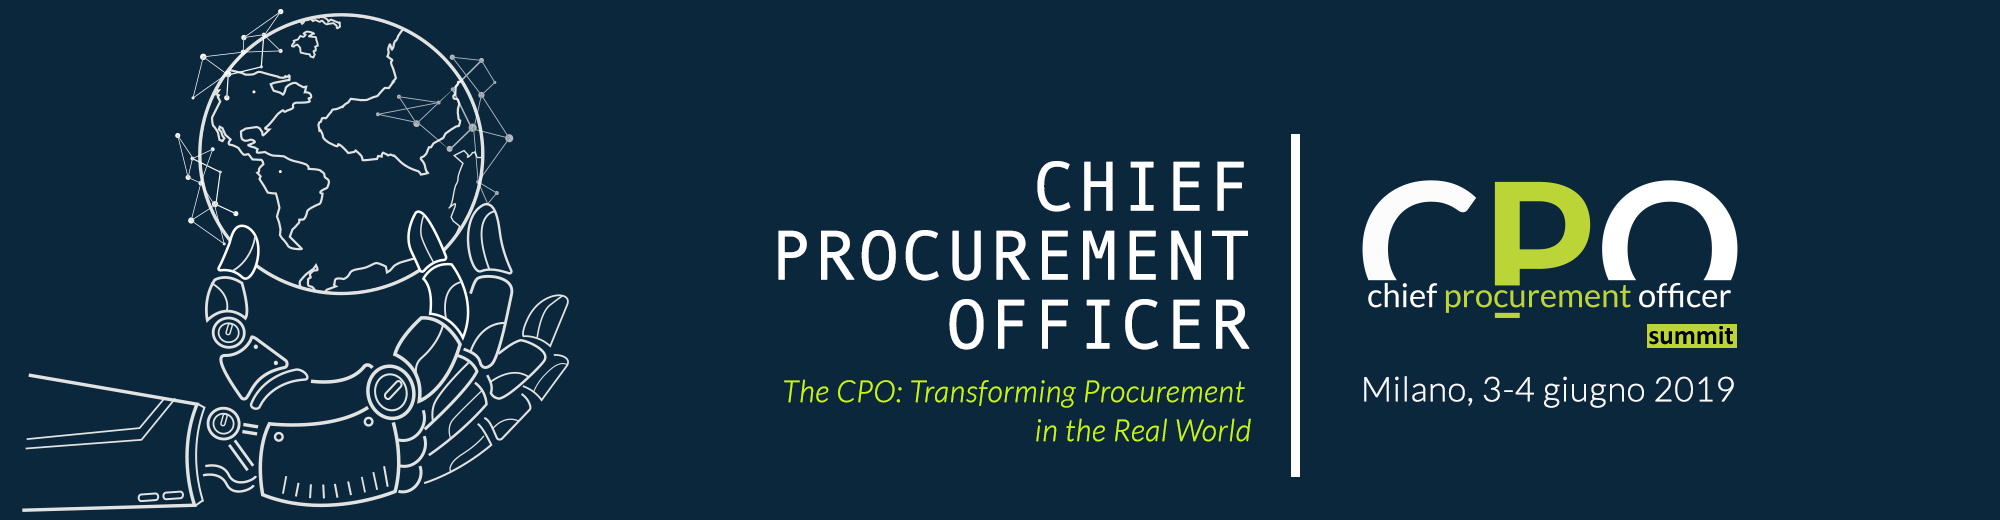 CPO - Chief Procurement Officer Summit